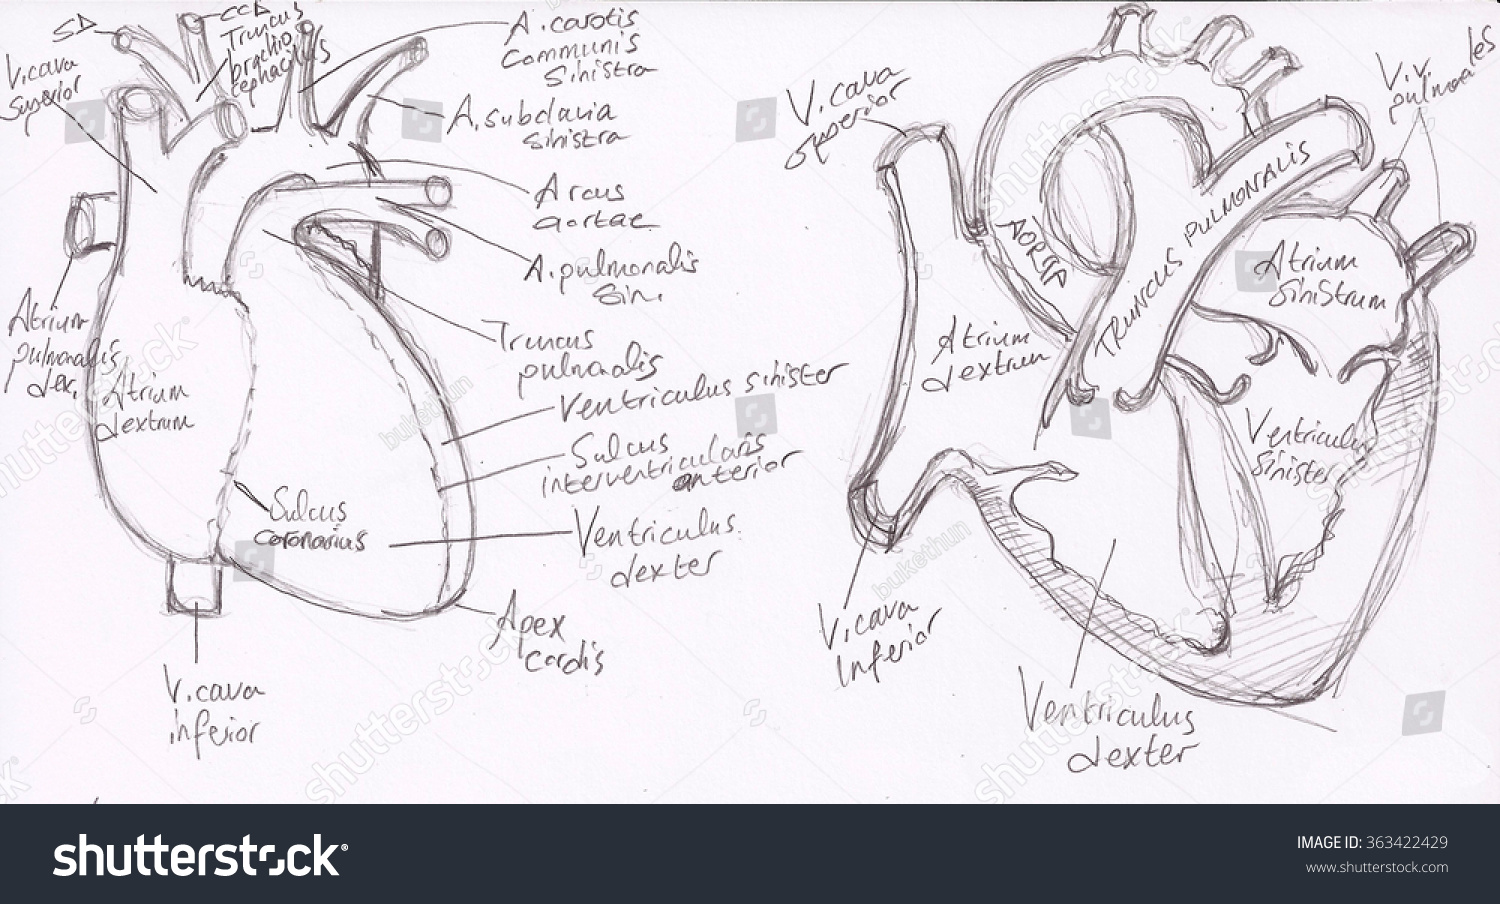 Anatomy Drawings Heart Medical Illustration Cardiology Stock ...